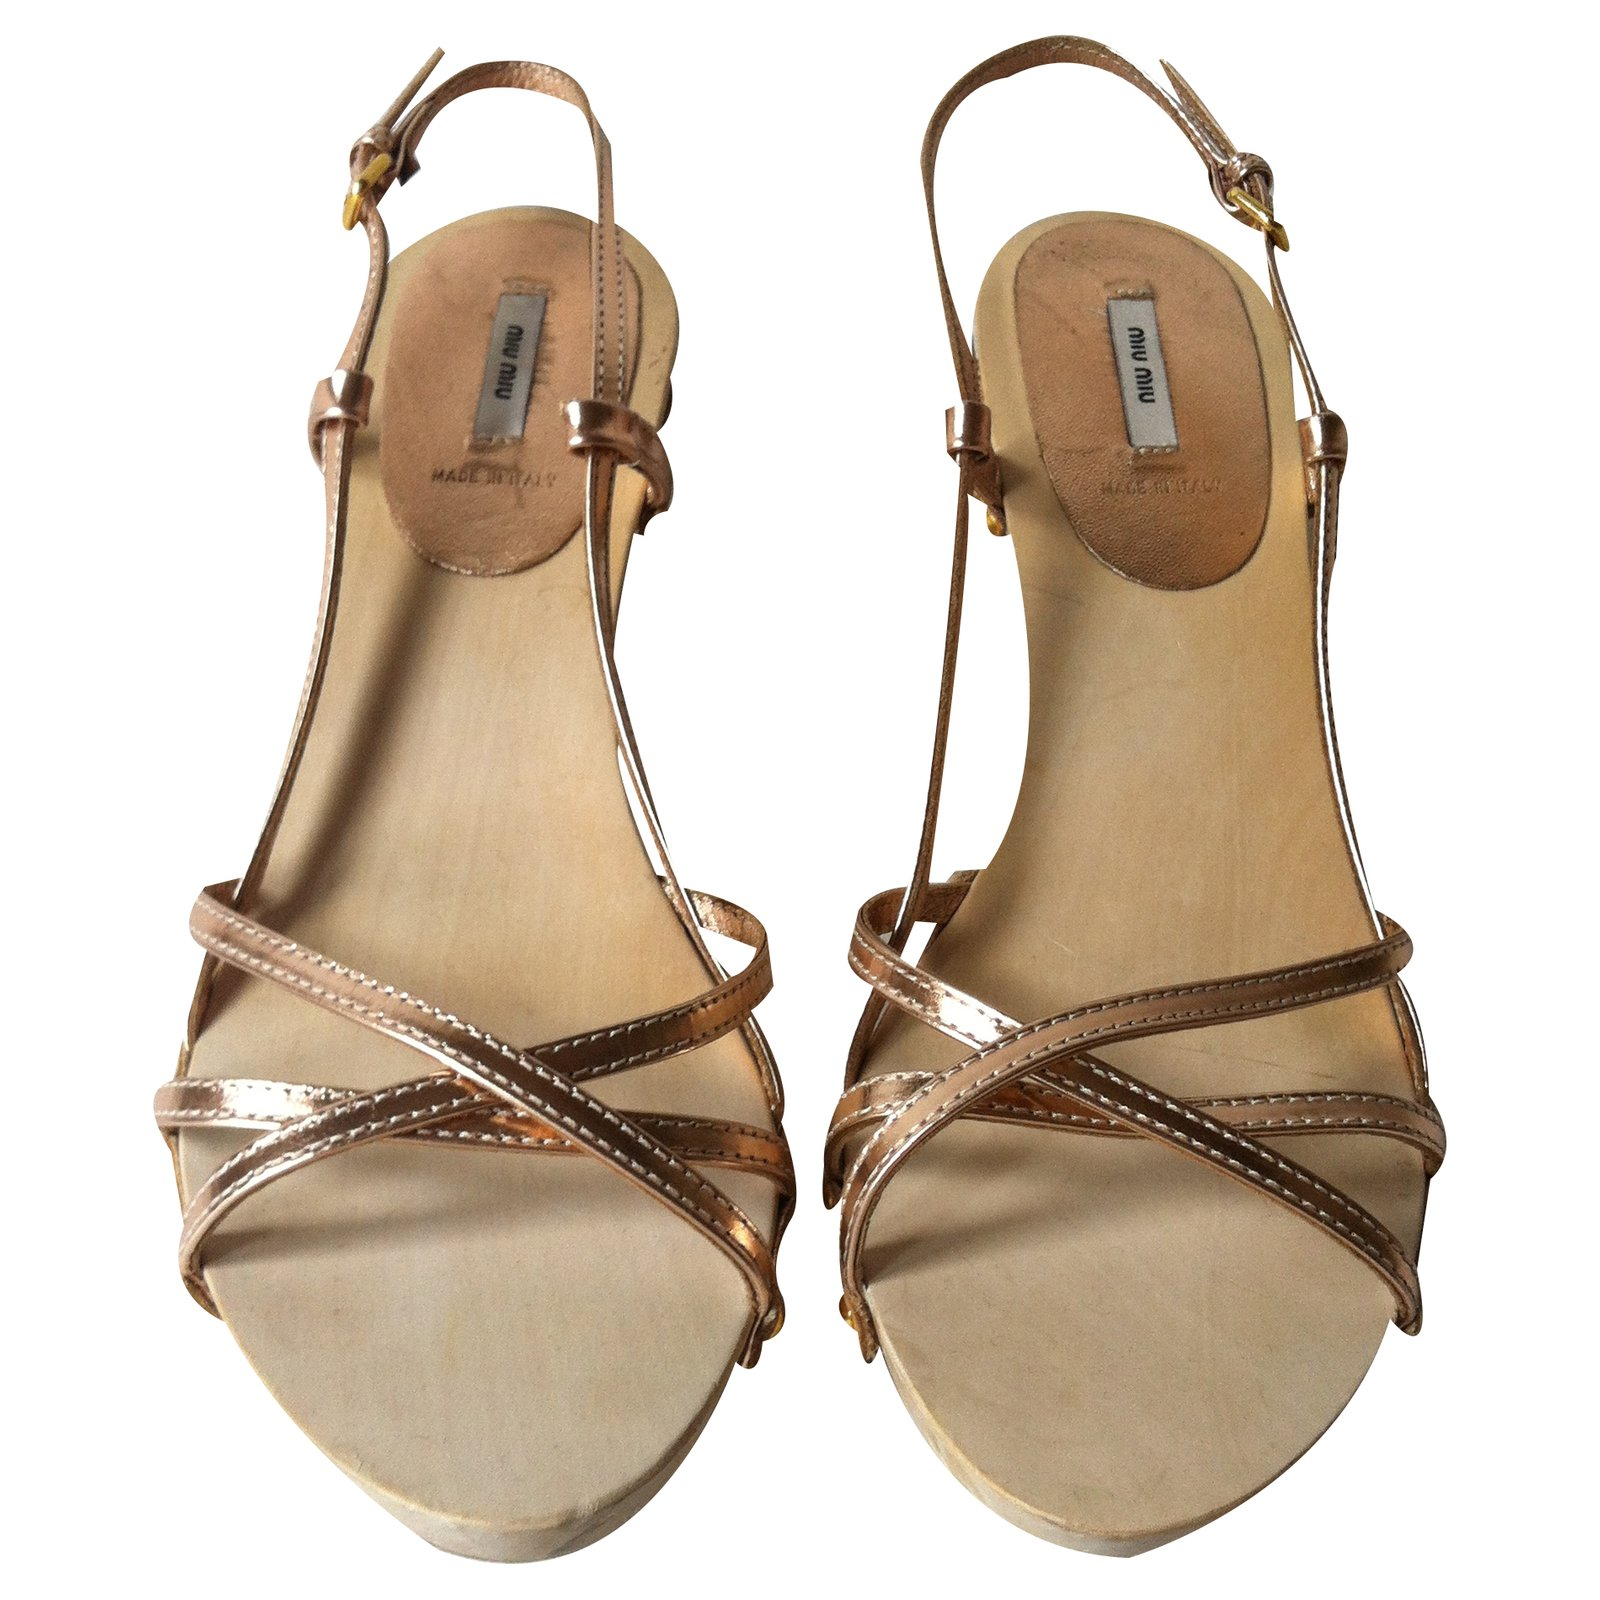 Miu Miu Sandales Miu Sandales Baroque Baroque Sandales Collection Collection c43LR5Ajq